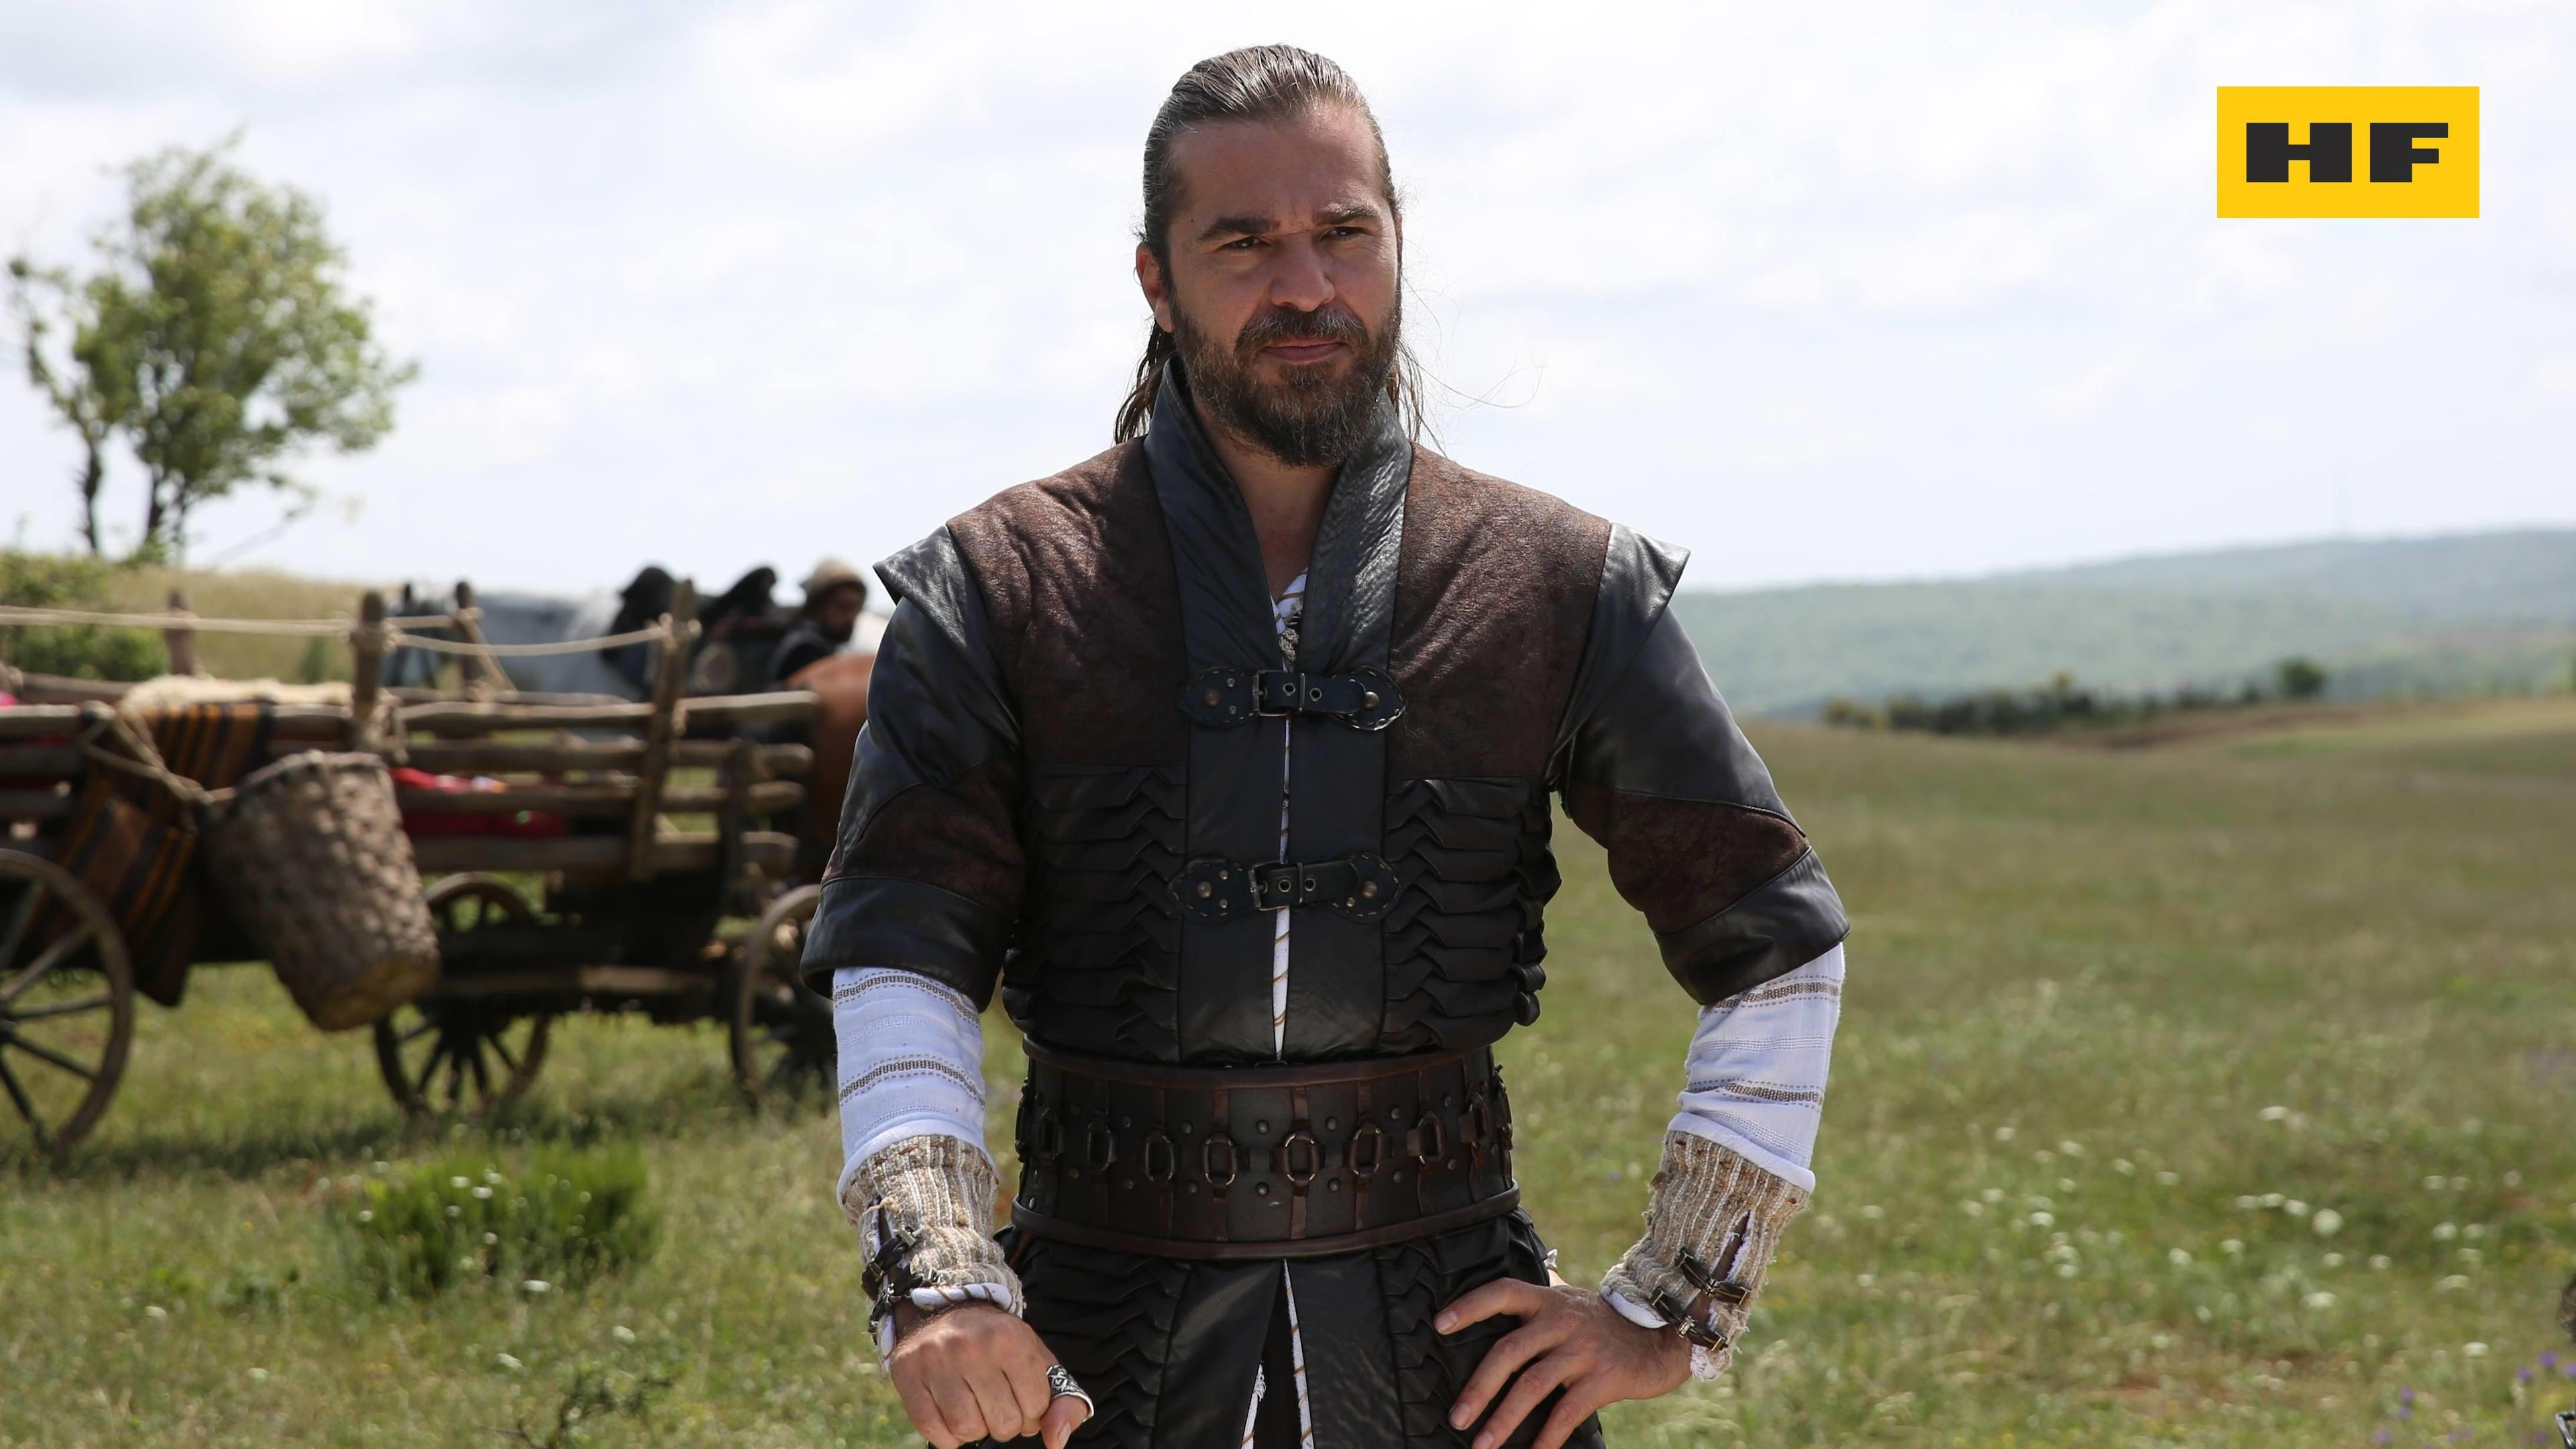 Dirilis Ertugrul Season 4 Episode 30